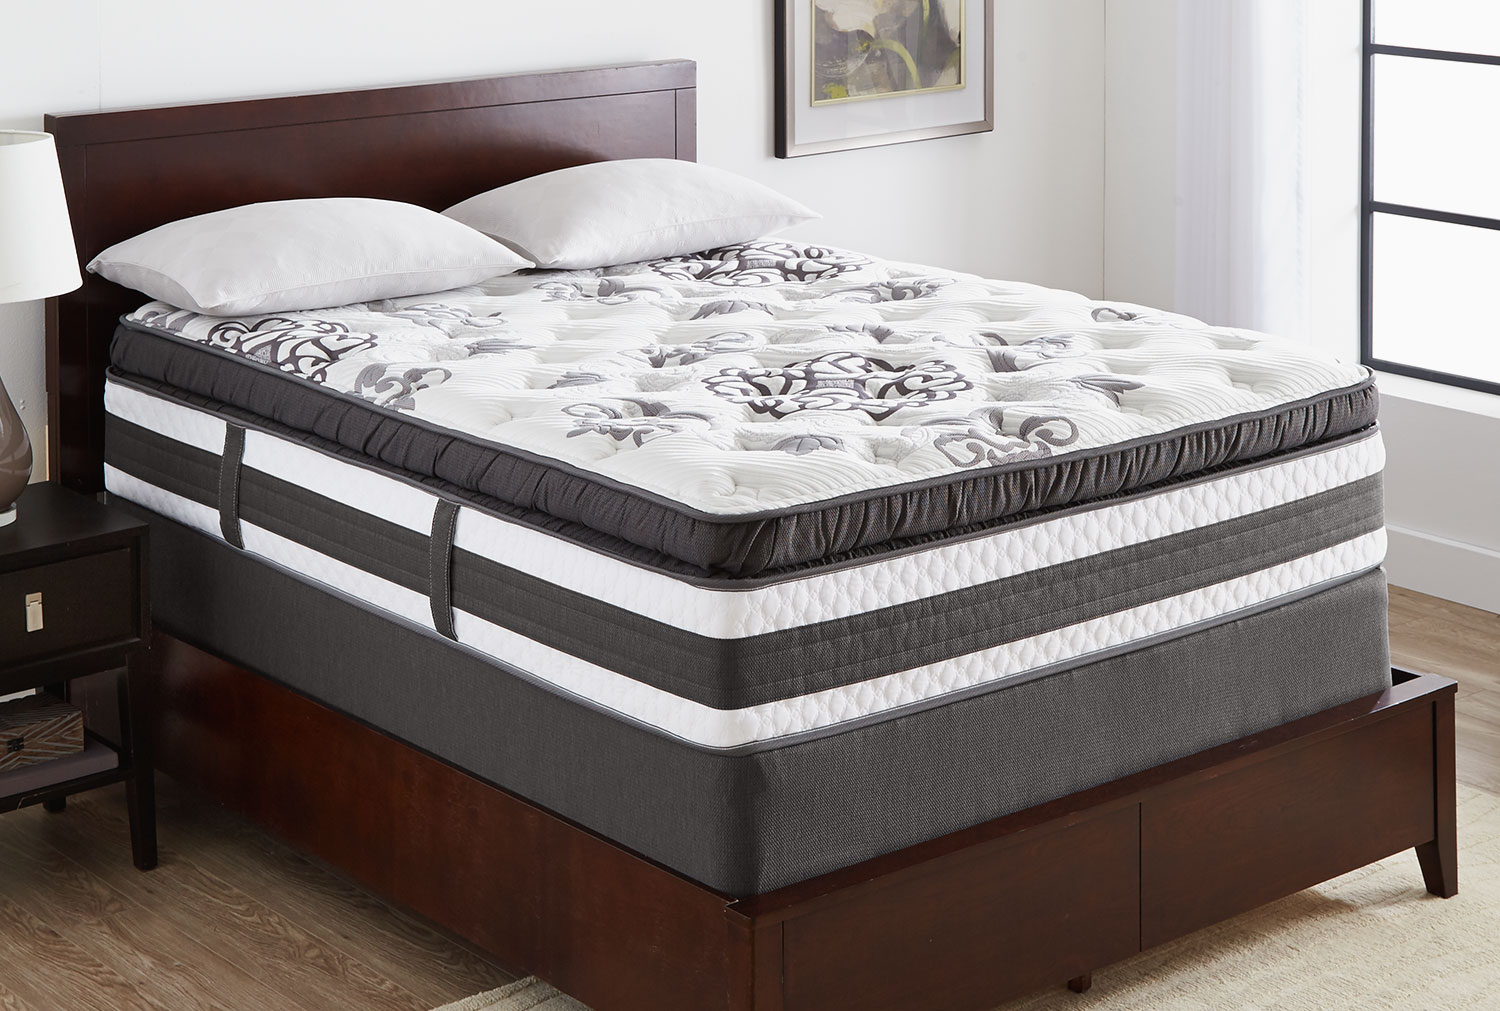 Mattresses and Bedding - Serta iCollection Hopedale Super Pillow-Top Plush Low-Profile Split Queen Mattress Set